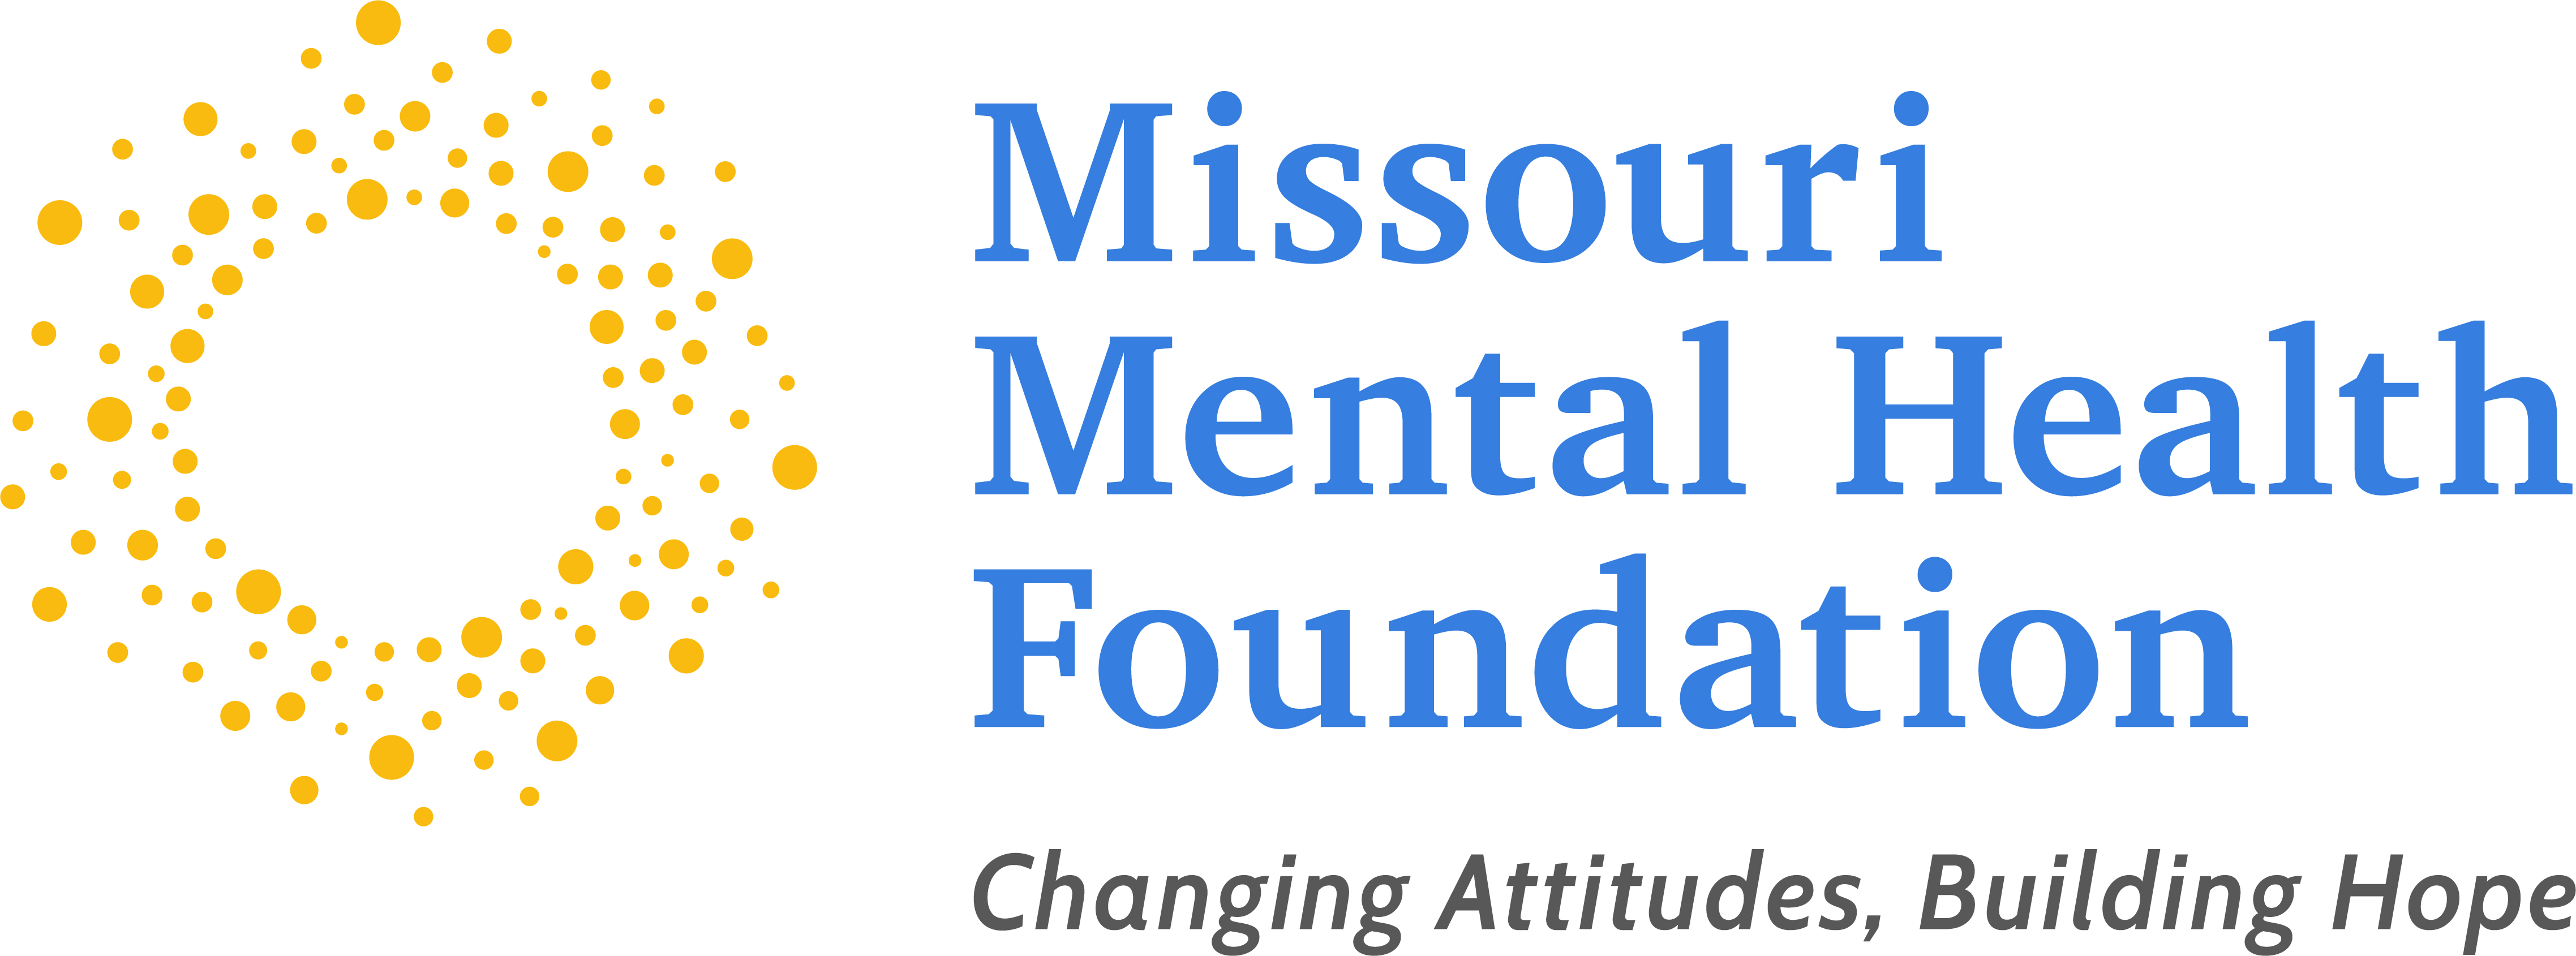 Missouri Mental Health Foundation